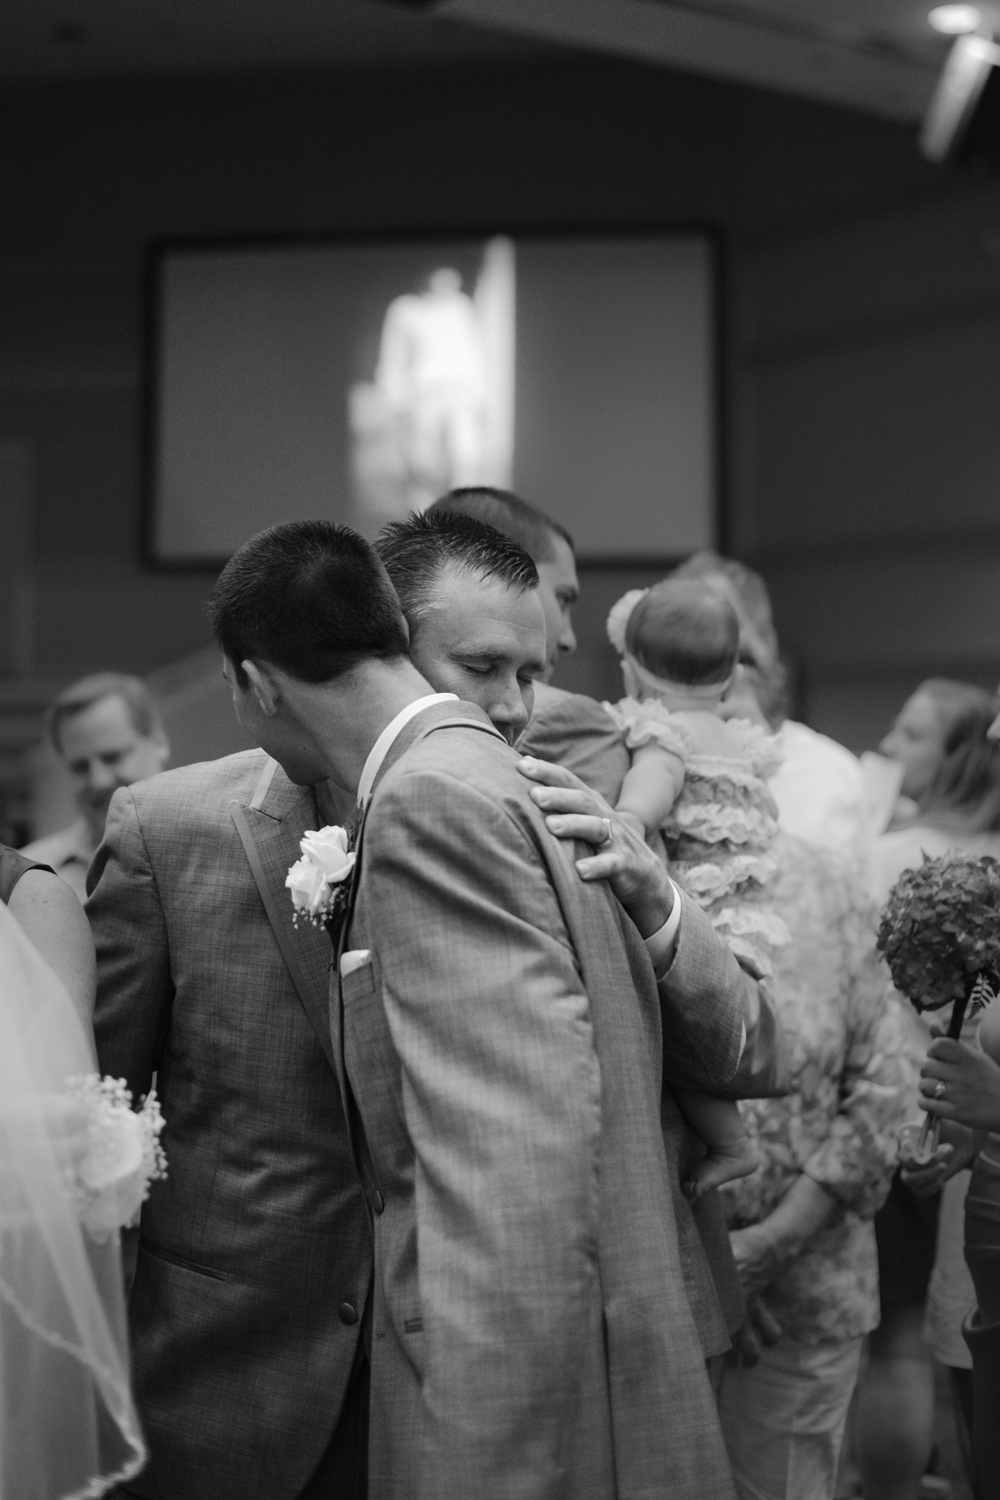 Groom and his father embrace at the wedding reception, black and white